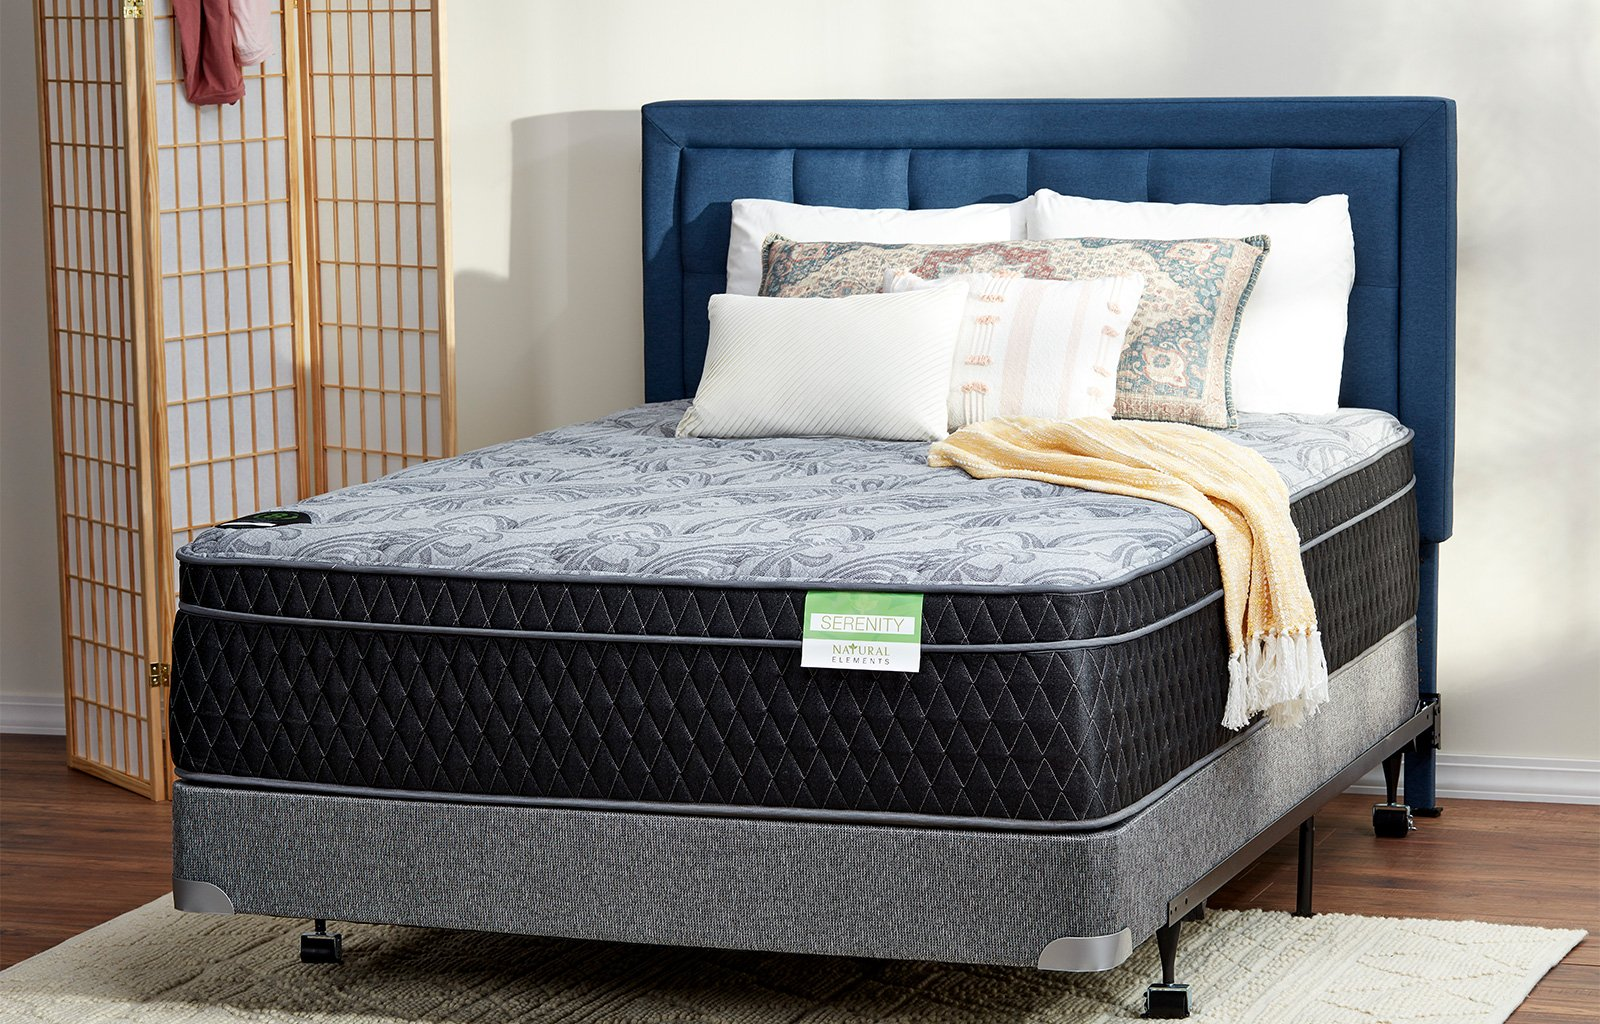 Natural Elements Serenity Mattress